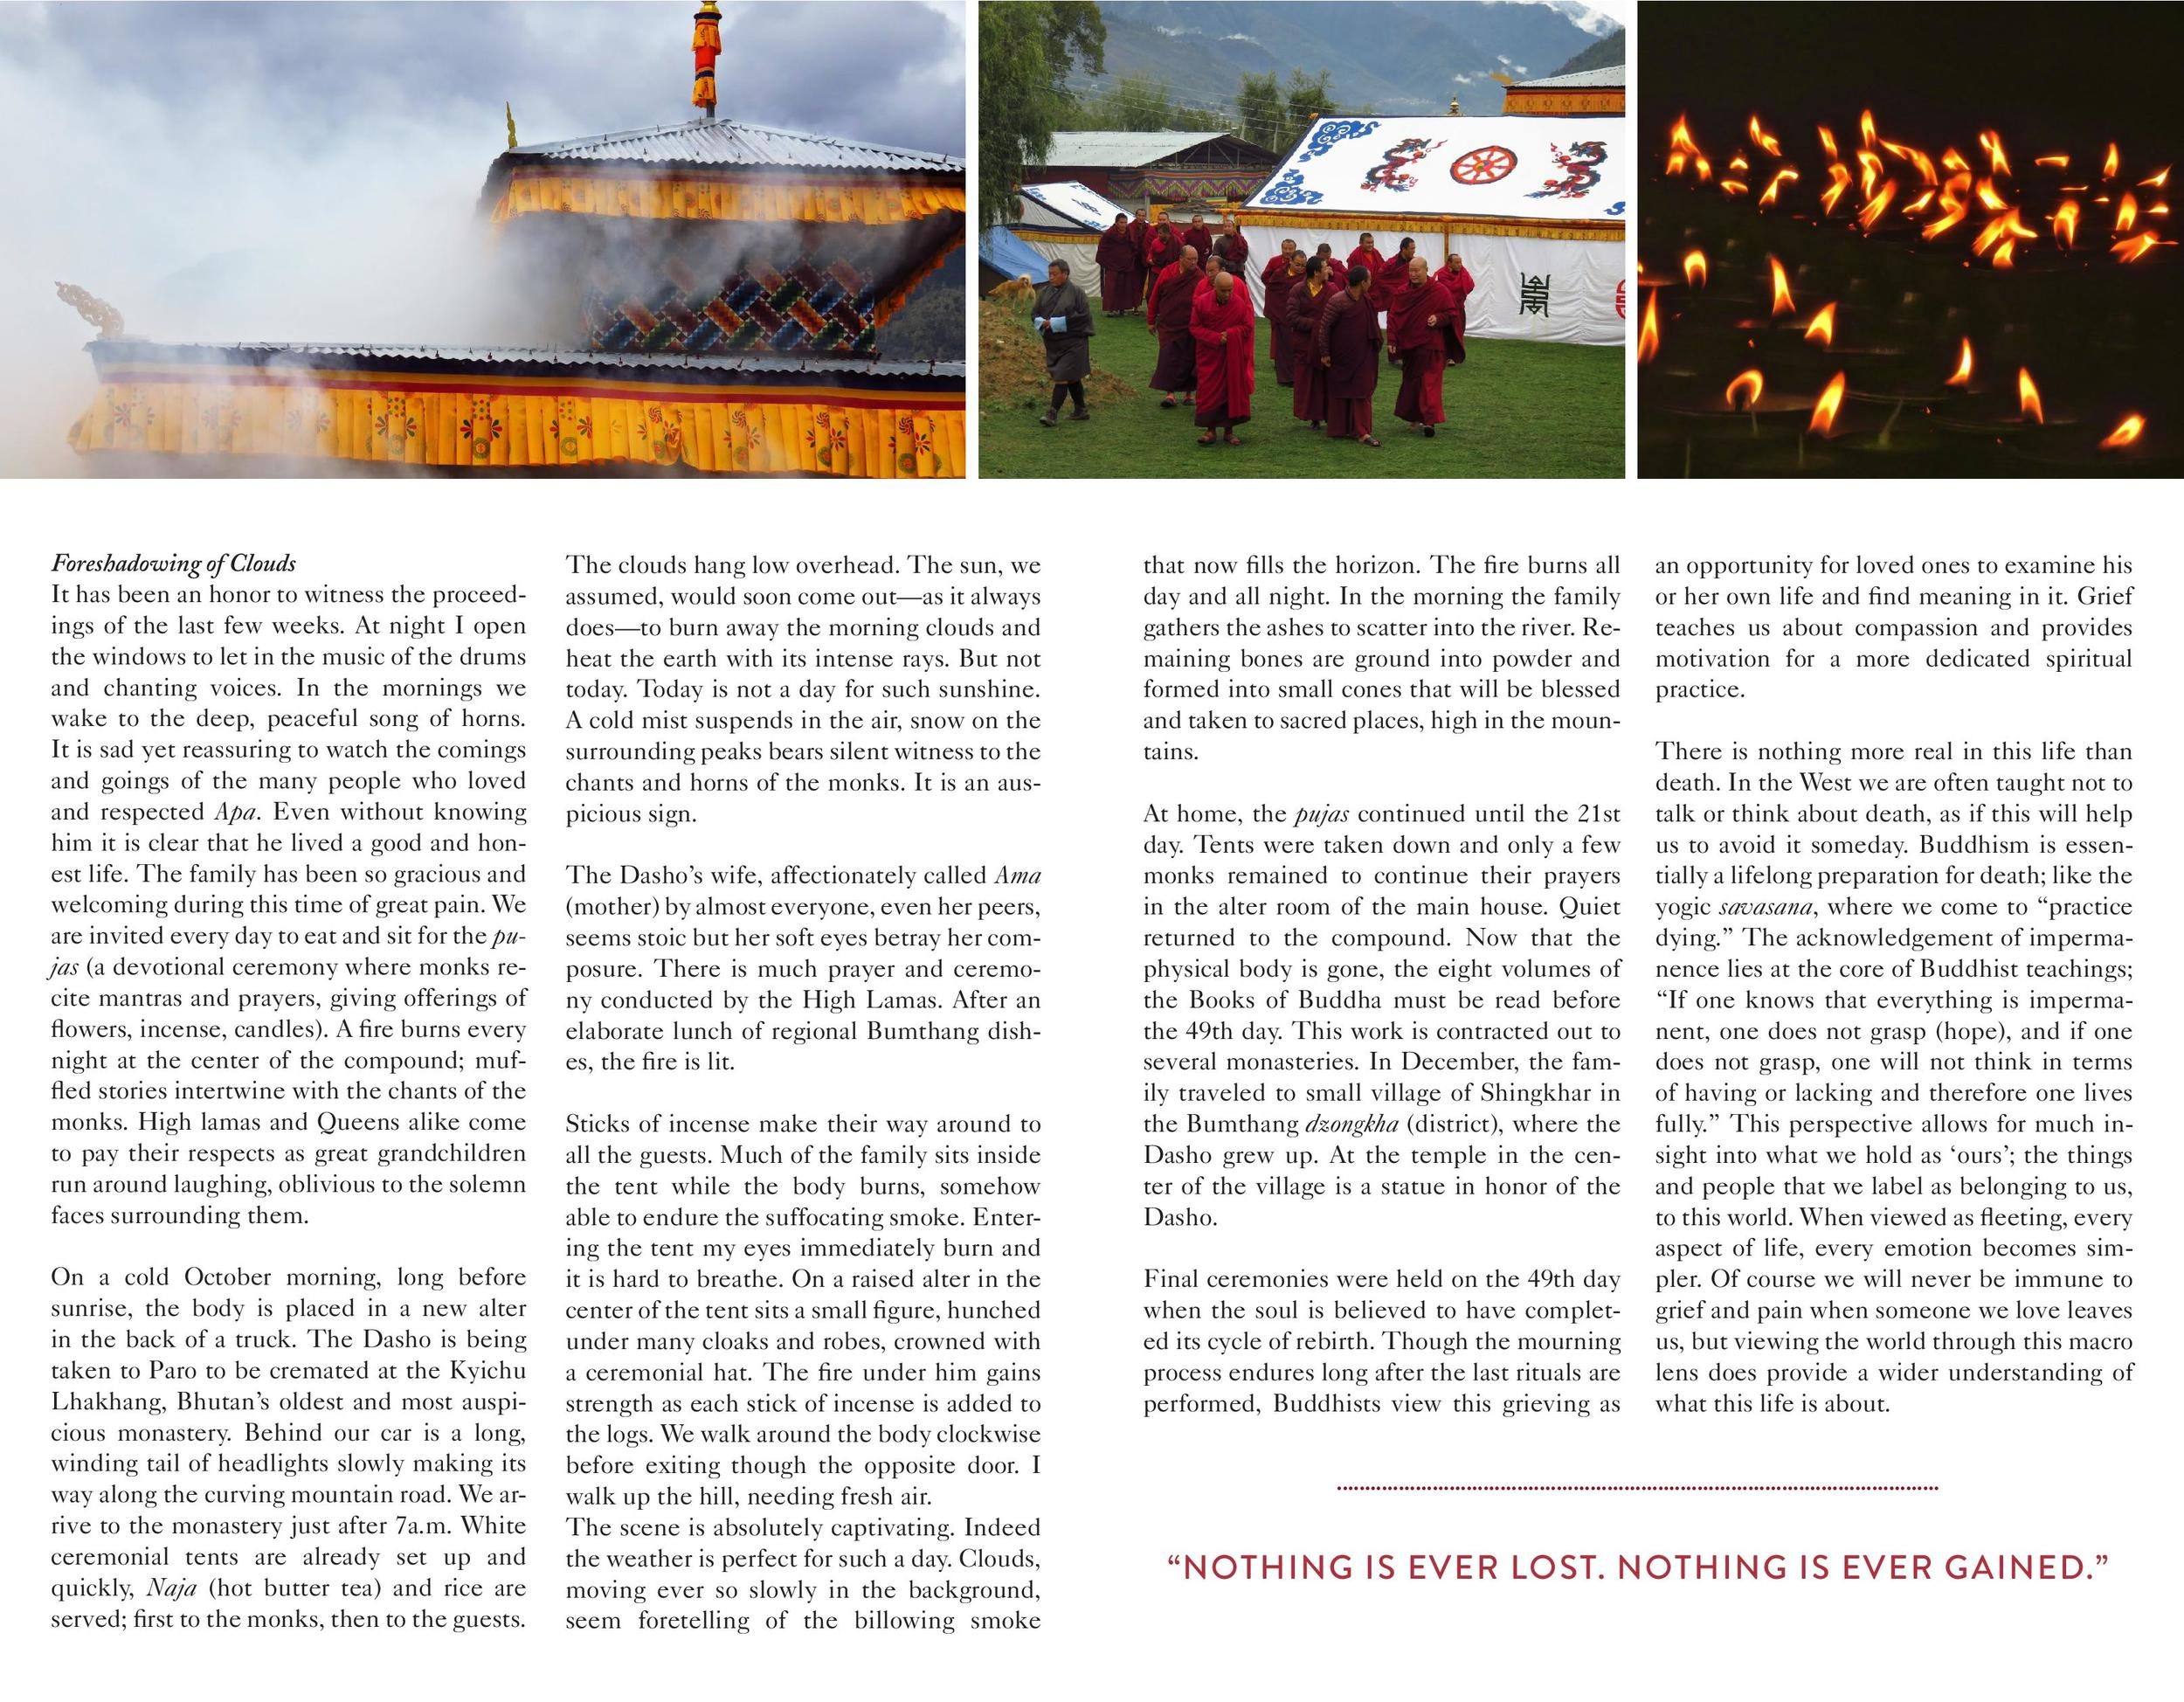 travels_with_a_burro_bhutan_02-page-014.jpg